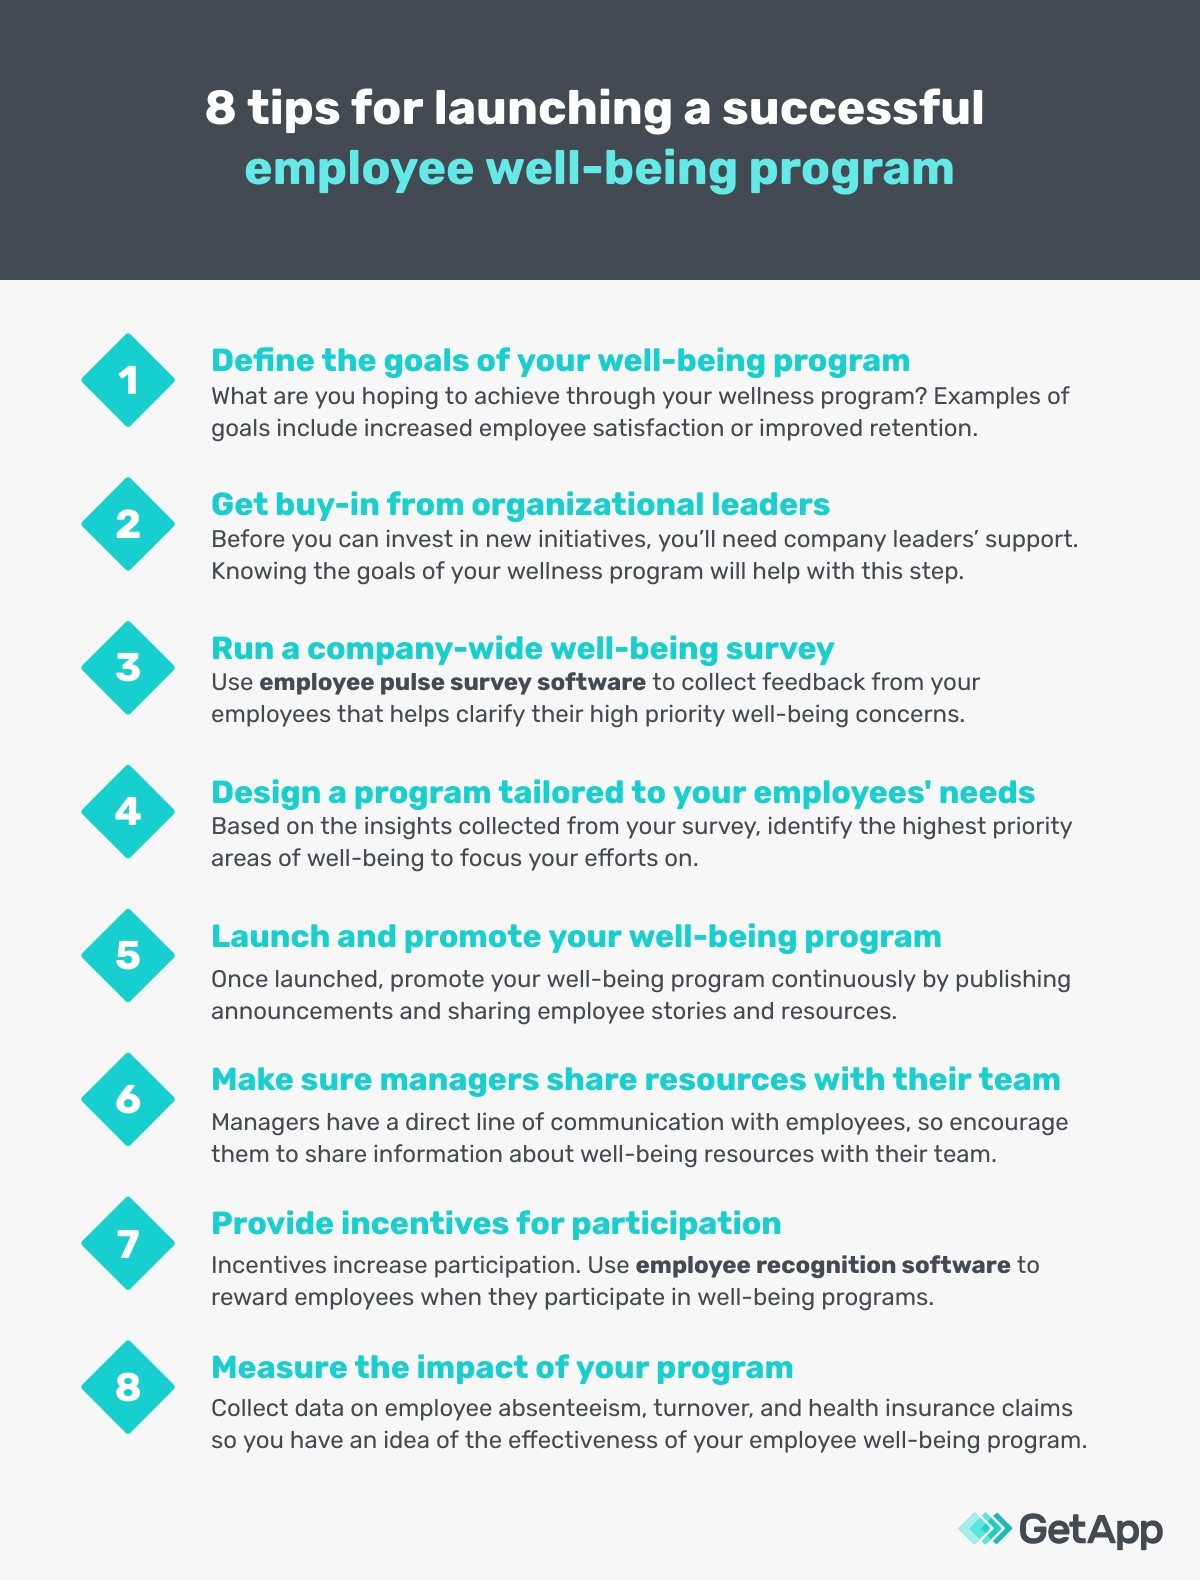 8 tips for launching a successful employee well-being program